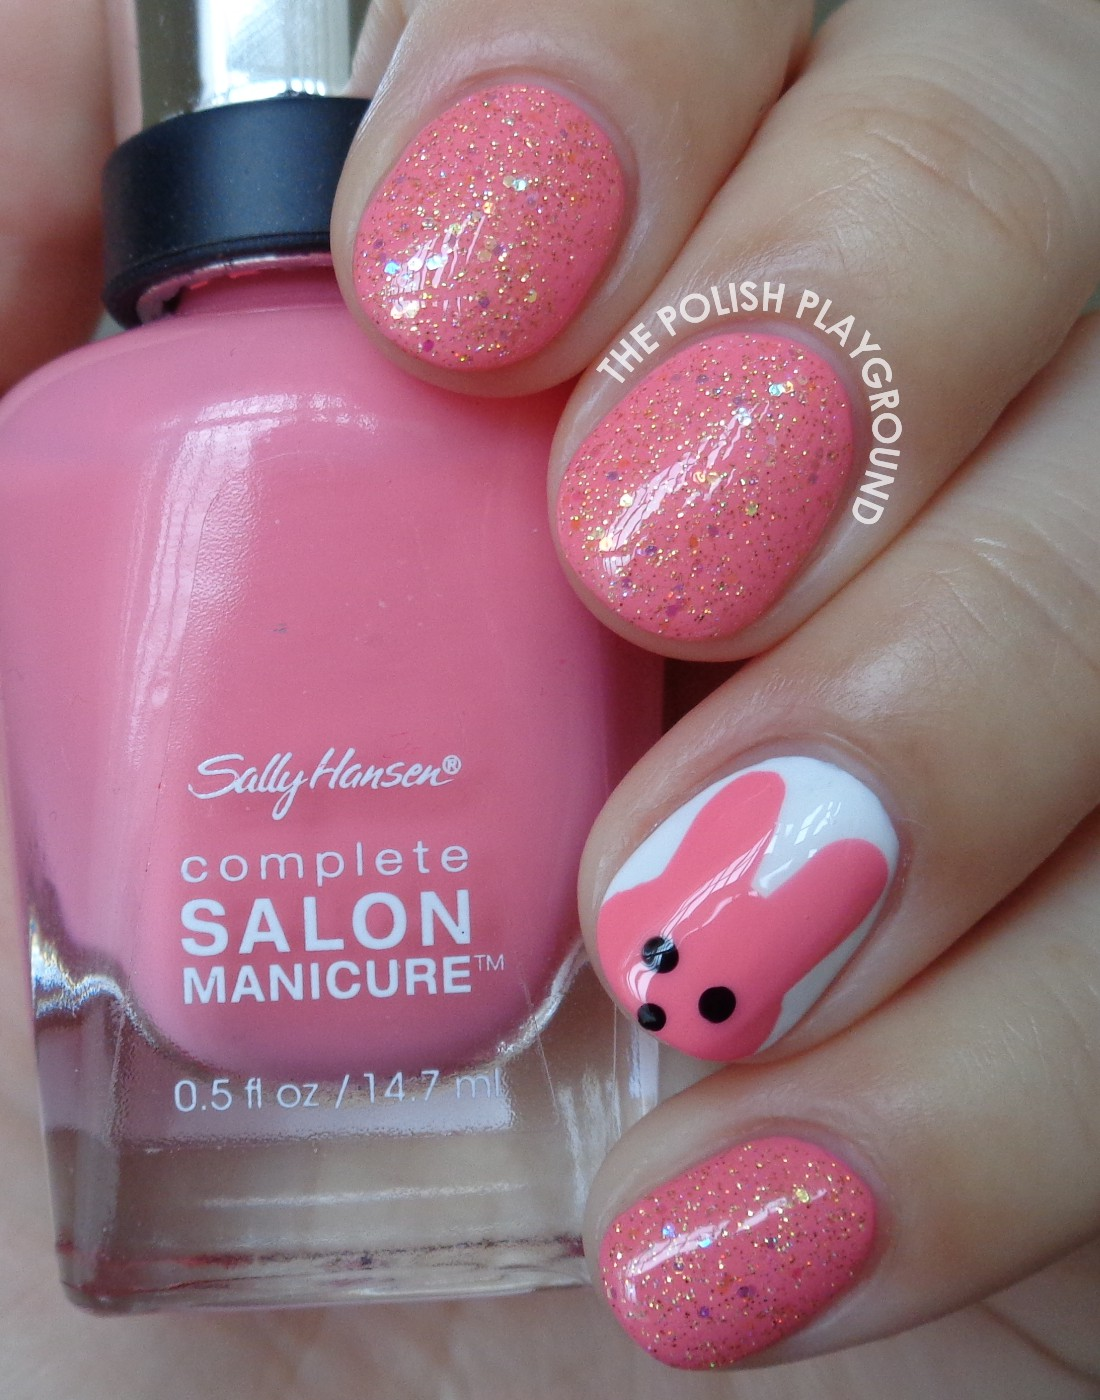 Tony Moly Petite Bunny Gloss Bar Inspired Nail Art